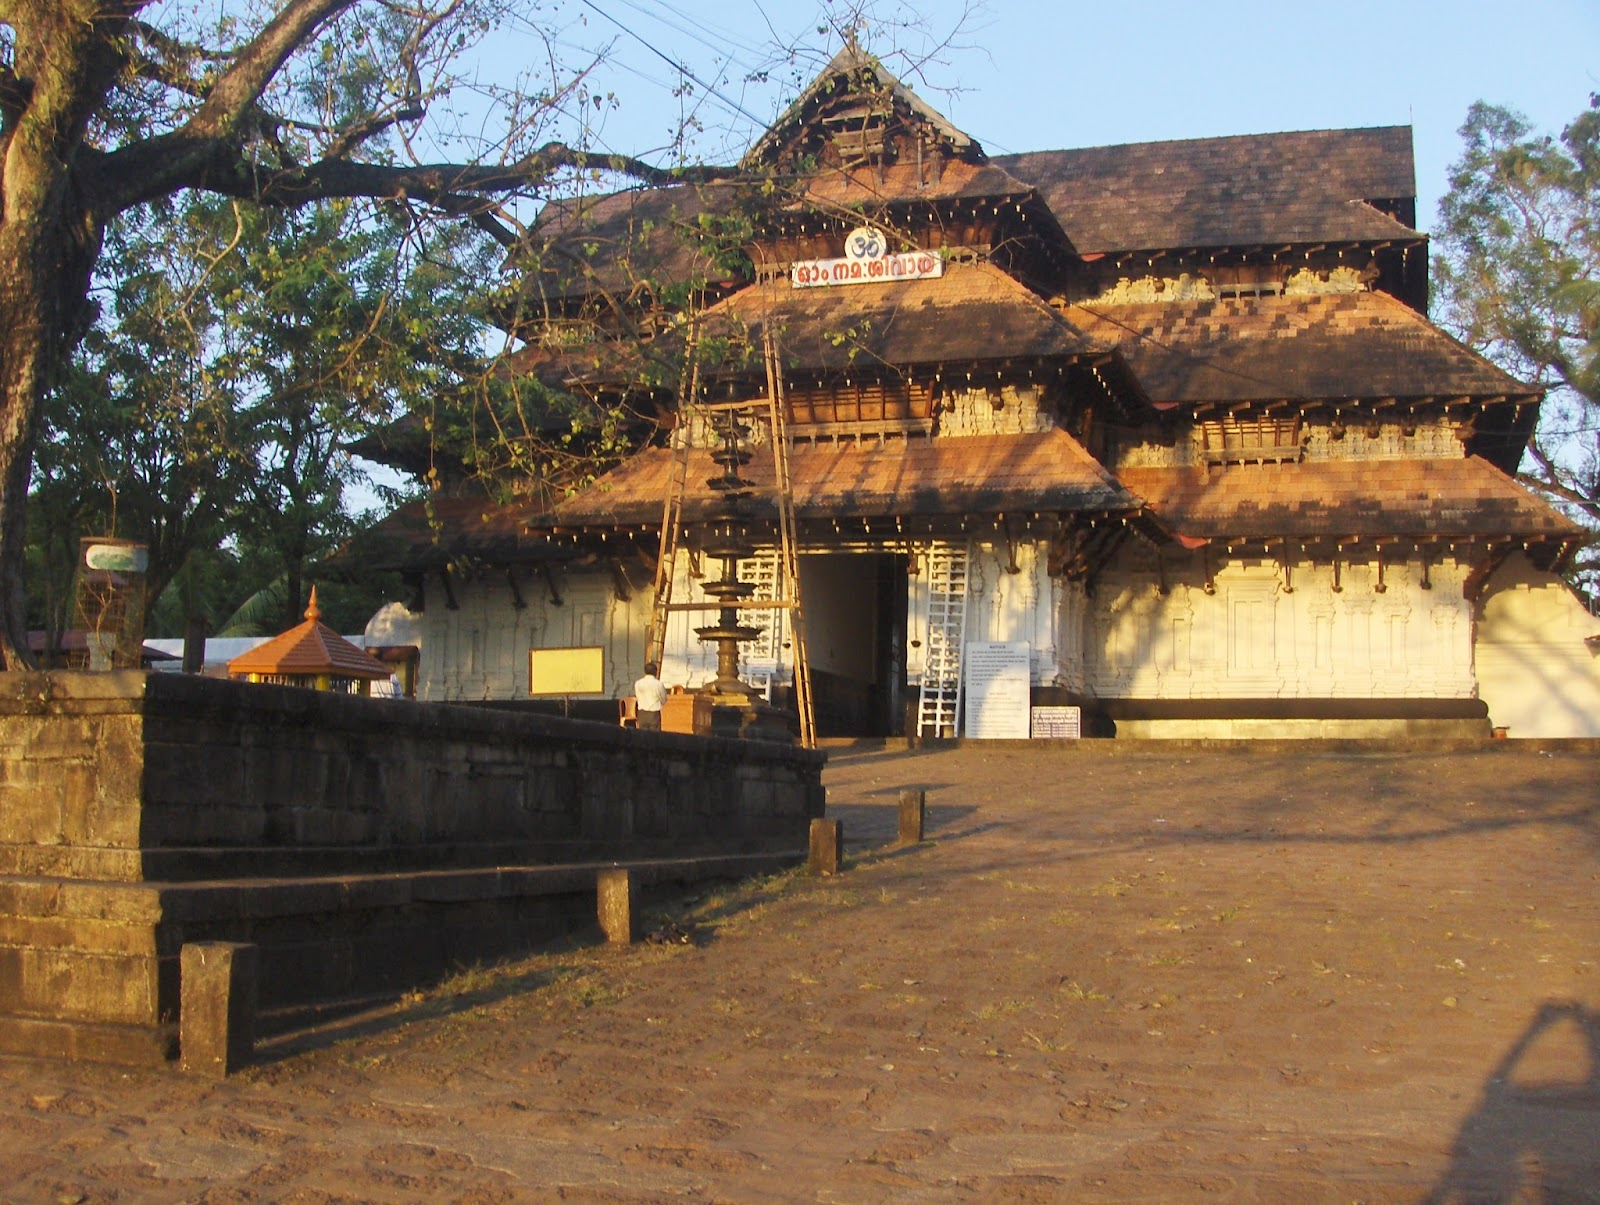 Pictures of kerala temples